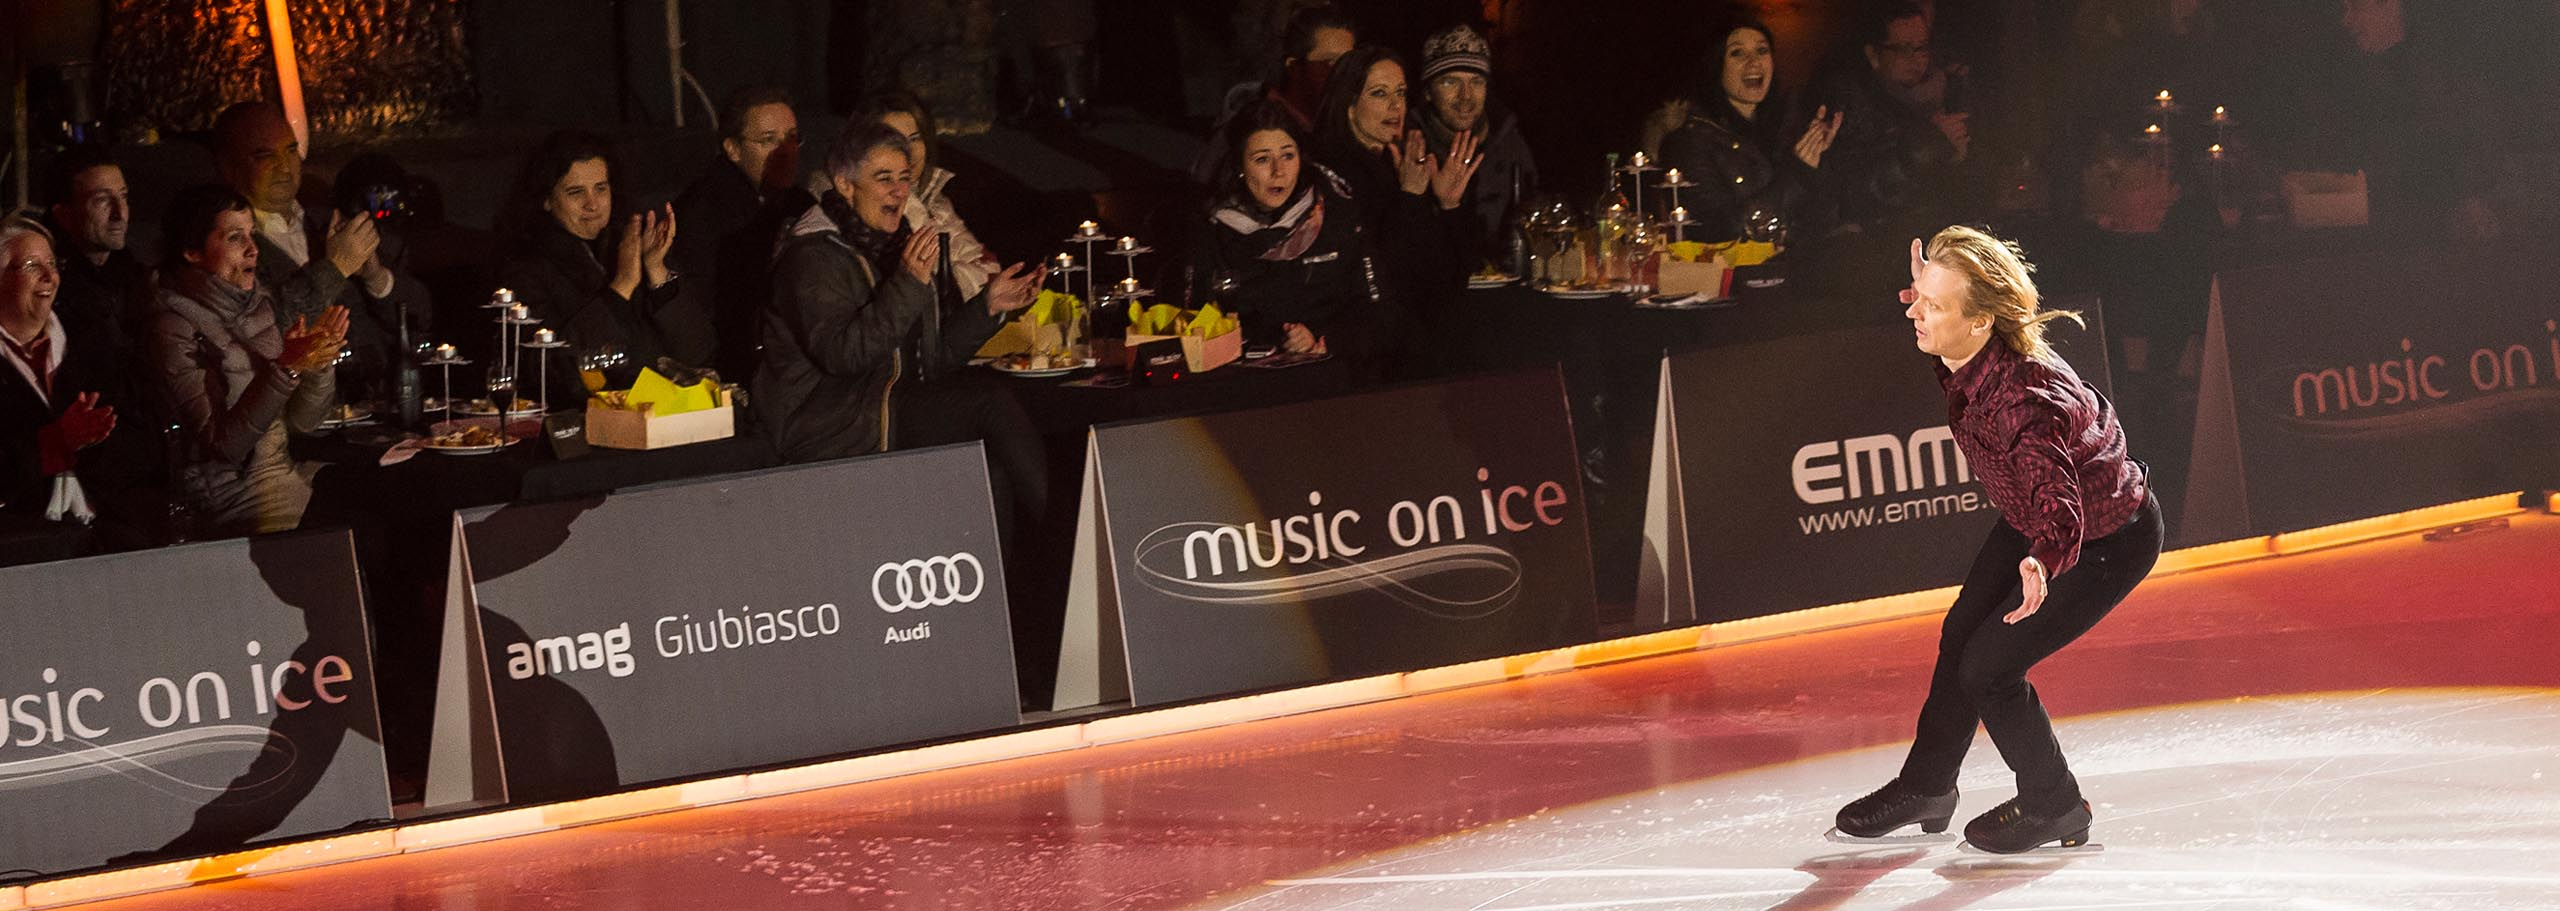 Jozef Sabovcik Music on Ice